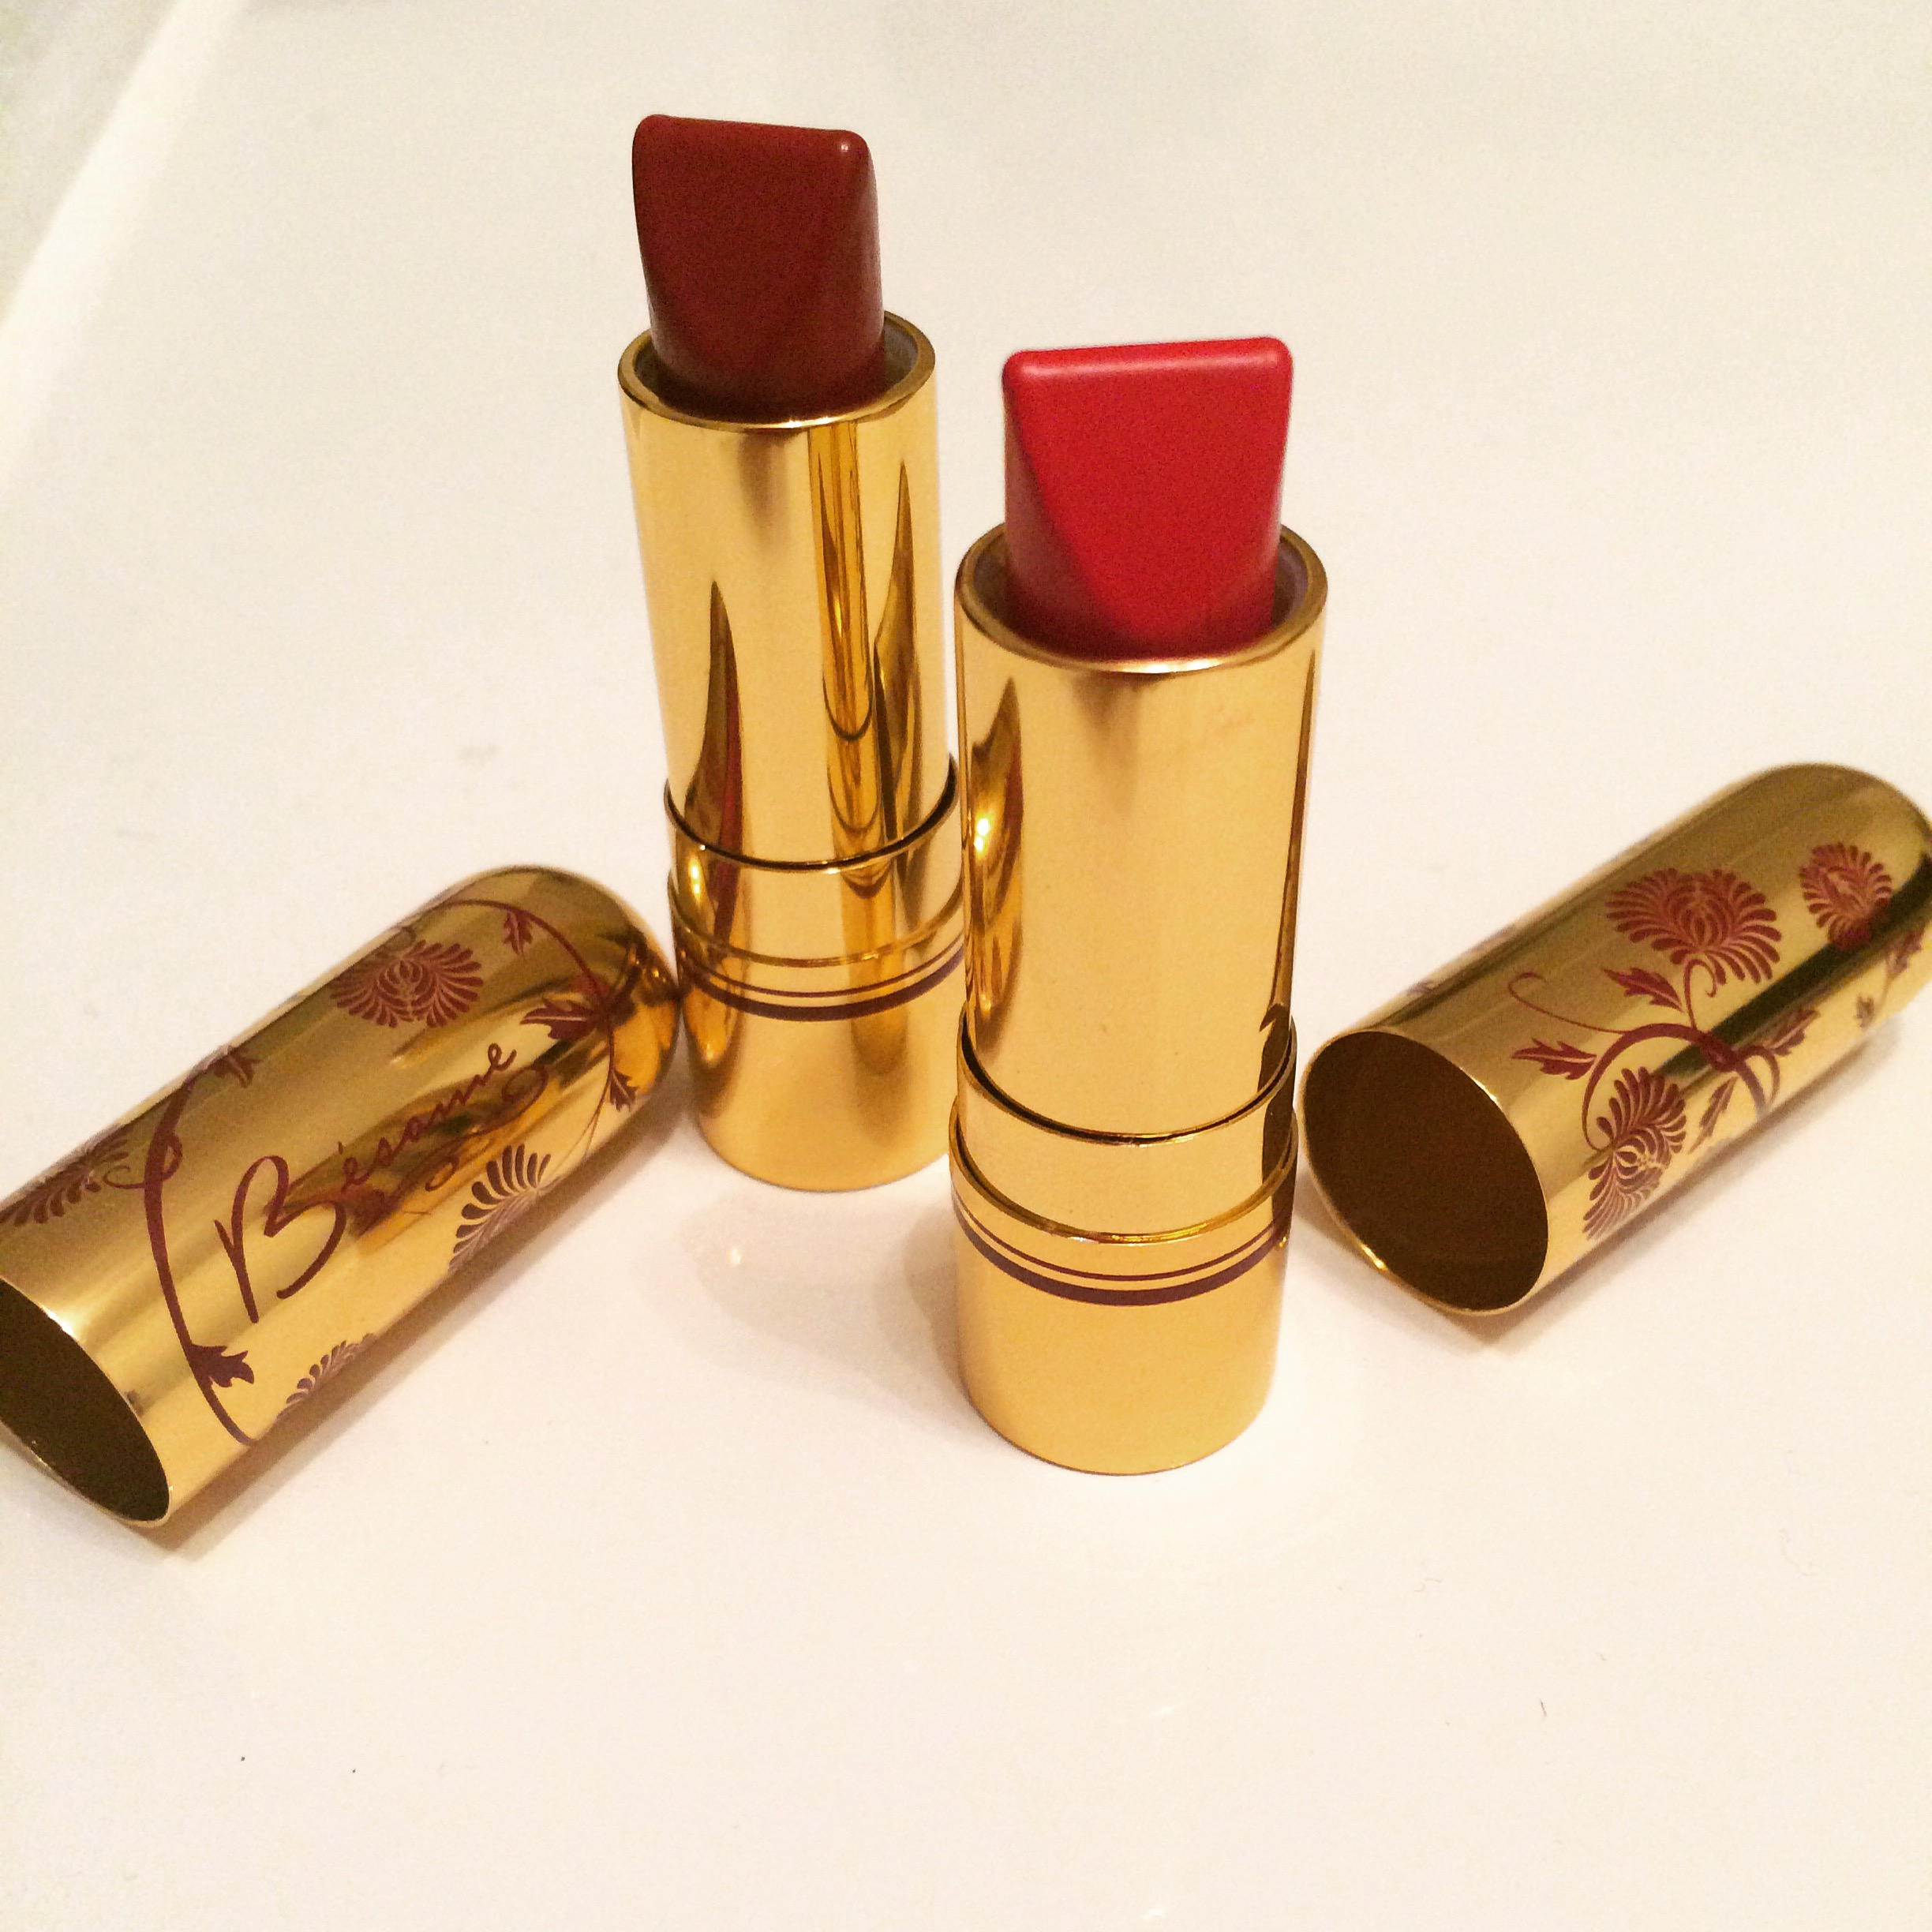 Vintage meets Present makeup: Besame Cosmetics red lipsticks